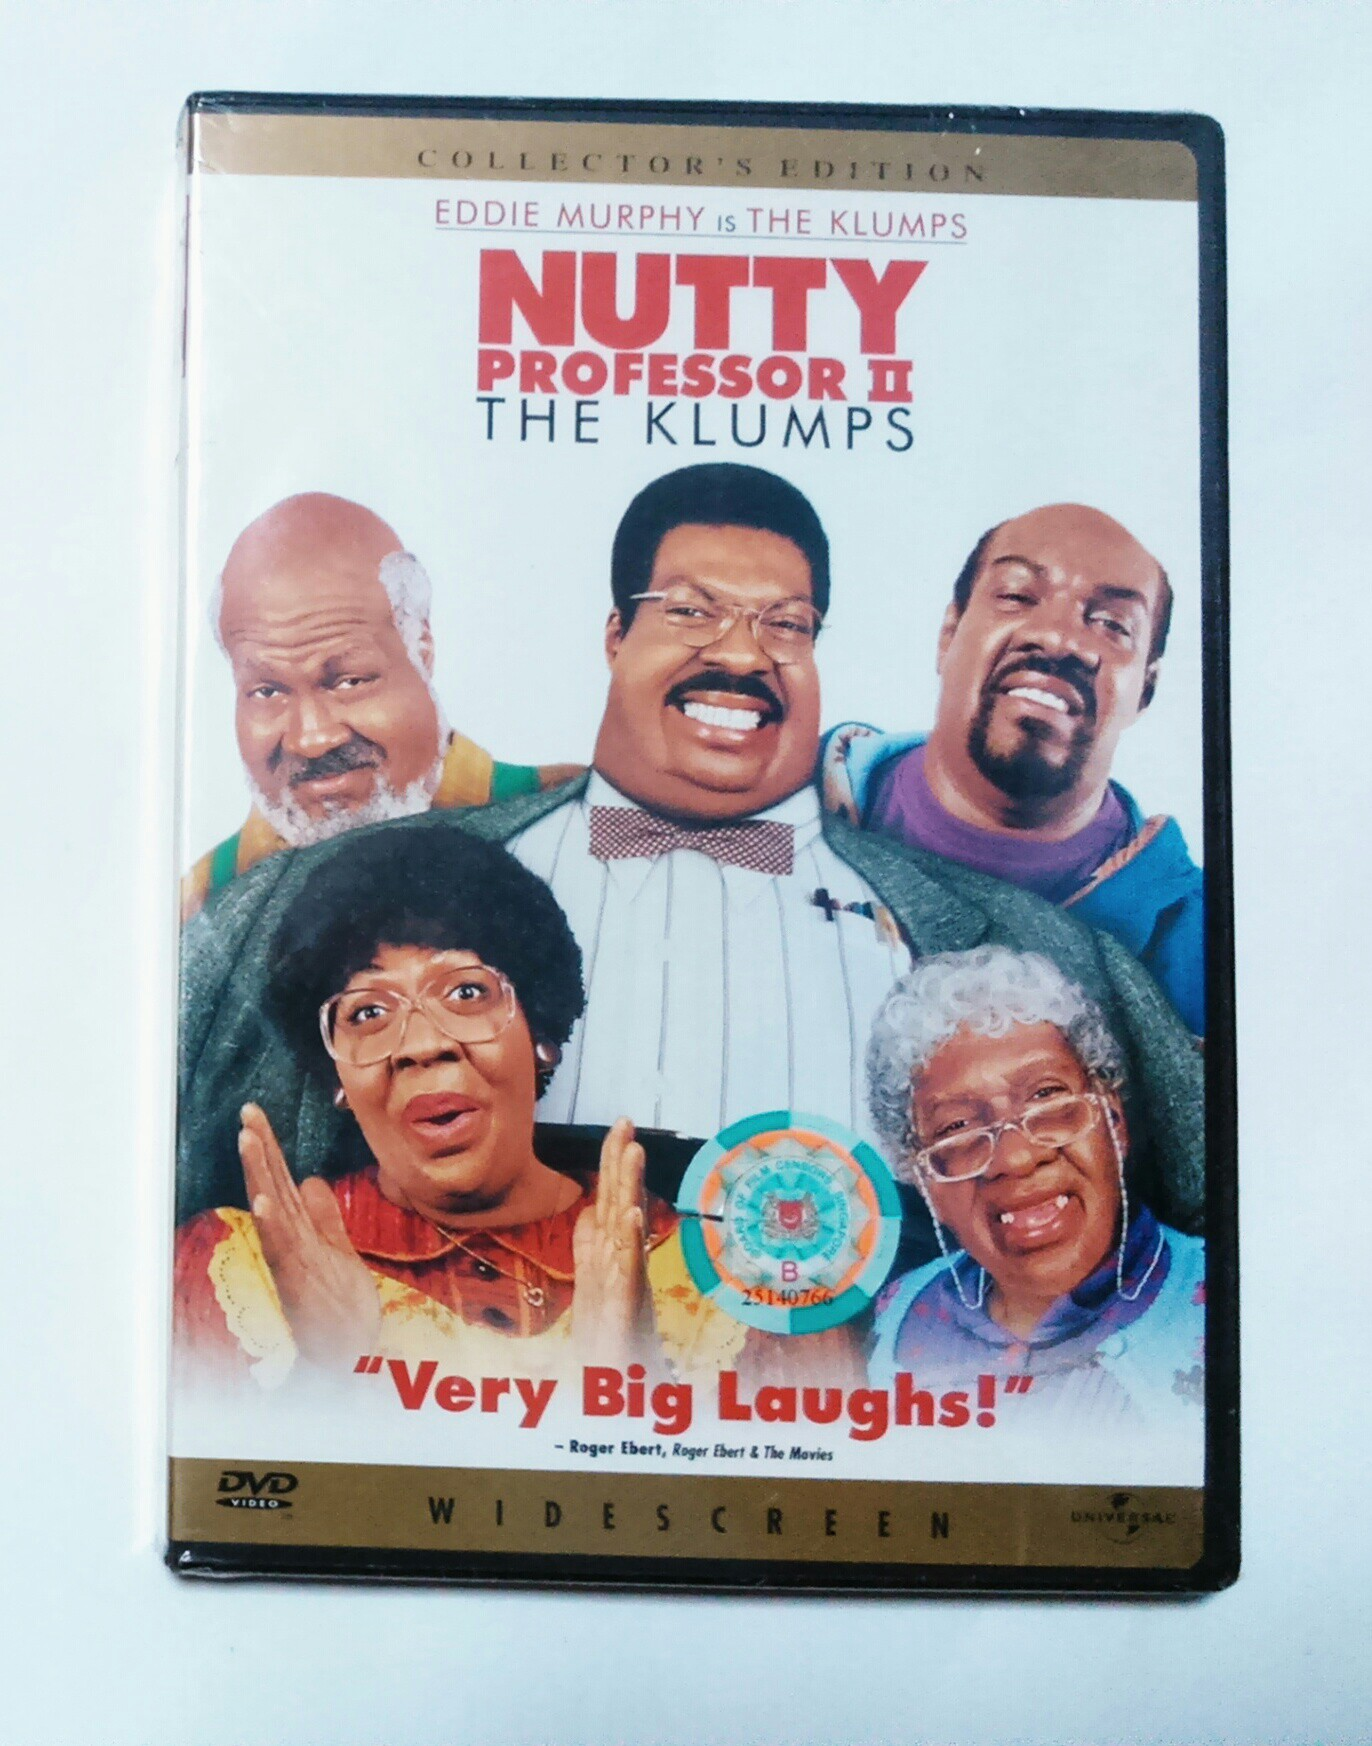 Comedy Movies Dvd Music Media Cds Dvds Other Media On Carousell